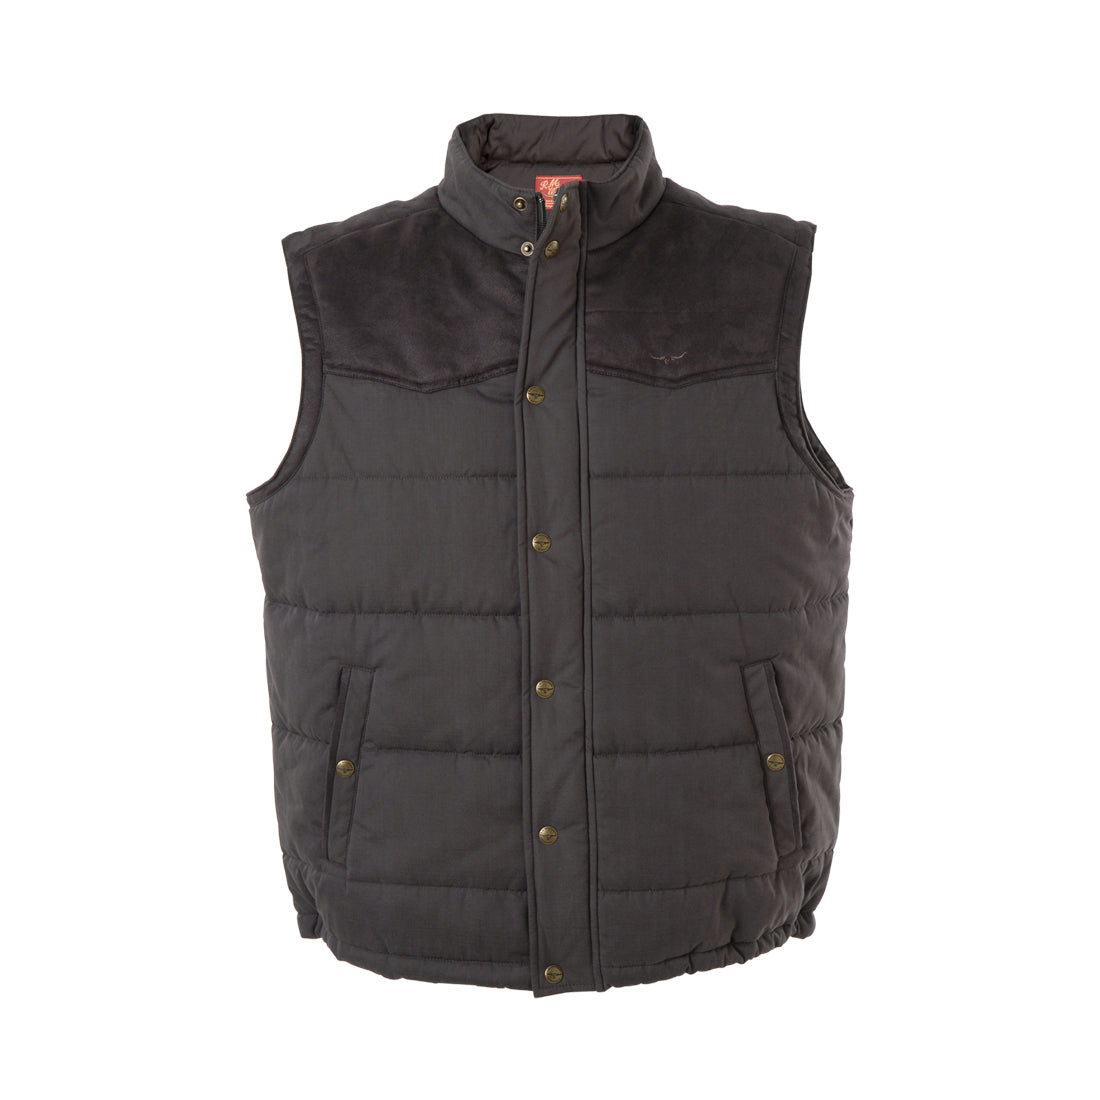 R M Williams Carnarvon Gilet for Men in Chocolate